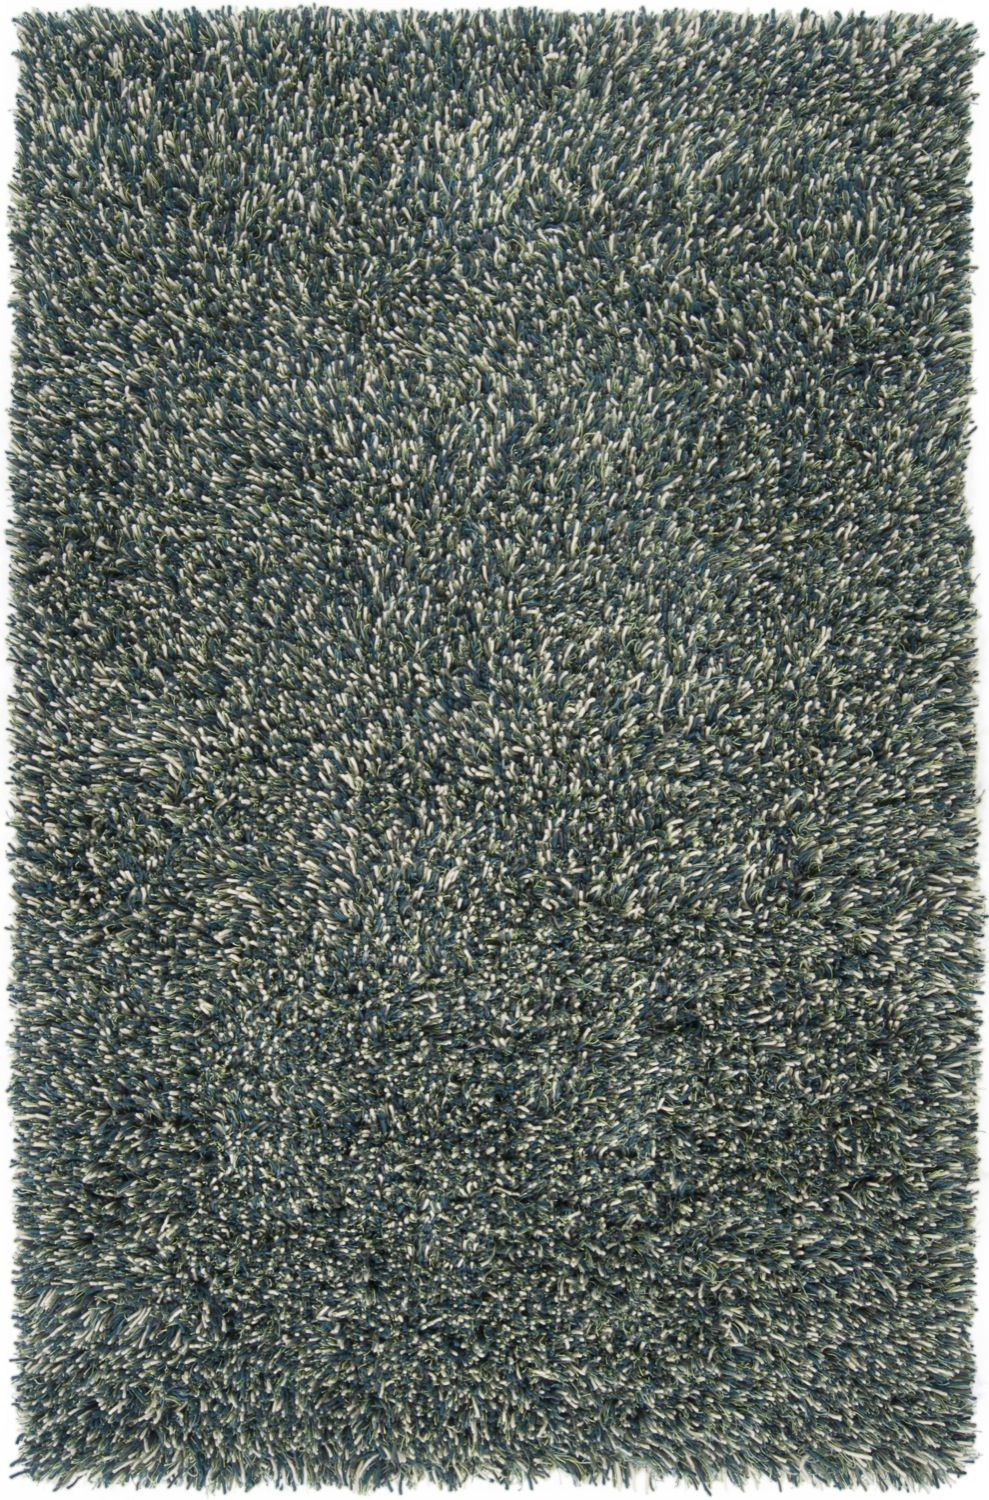 surya tela plush area rug collection